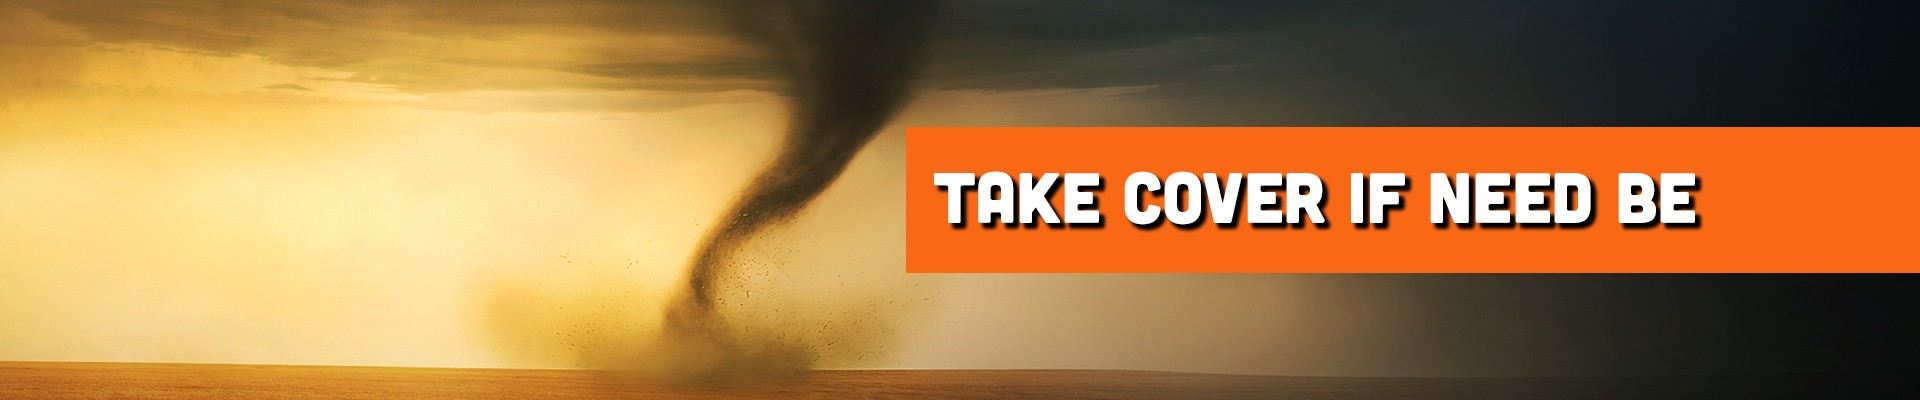 Take cover when need be if you see a tornado while driving your RV.